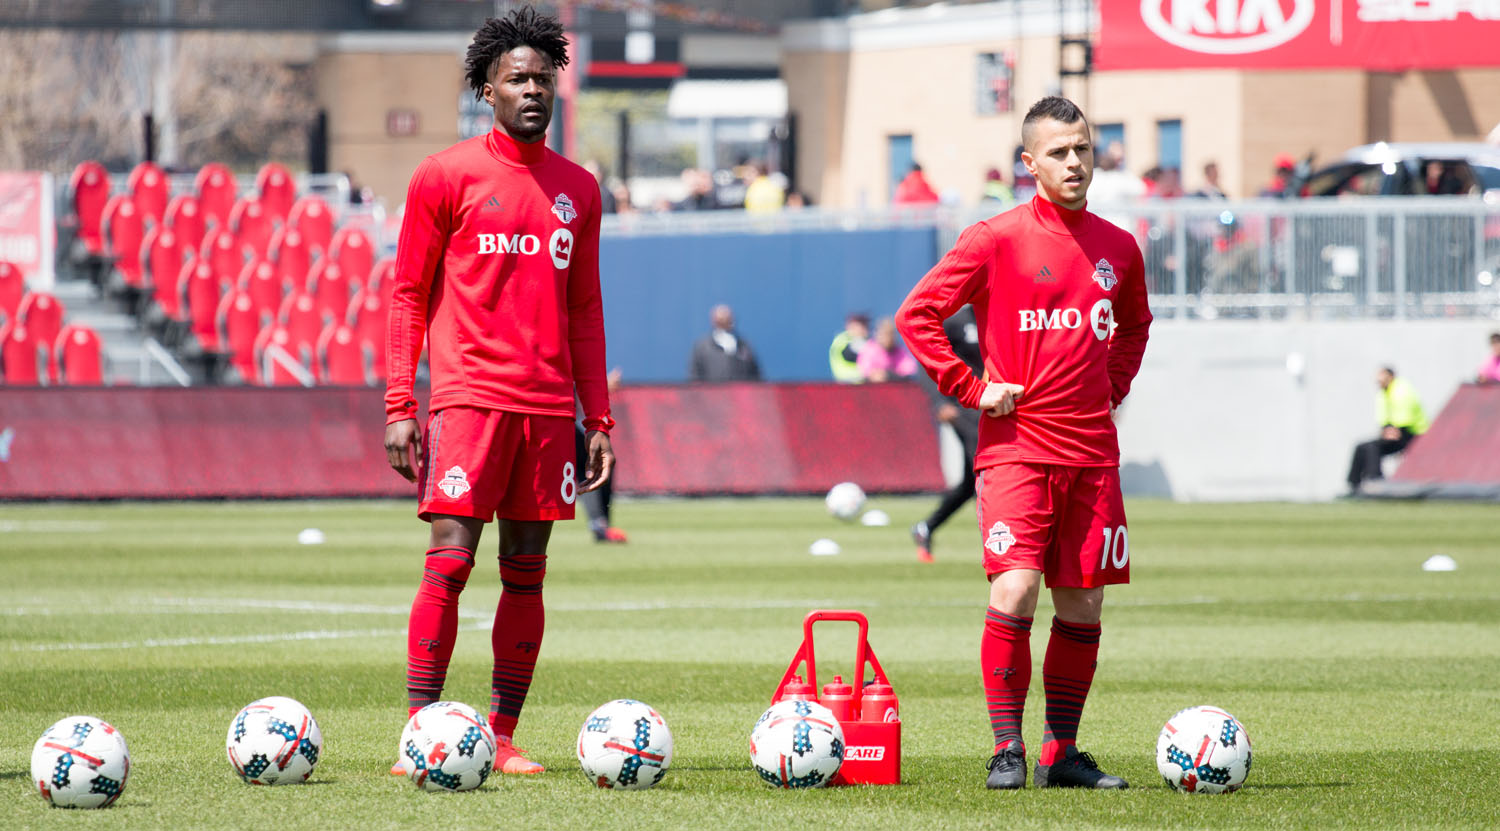 Tosaint Ricketts and Sebastian Giovinco wait to take shots on net during warm ups before a Major League Soccer match at BMO Field in 2017.Image by Dennis Marciniak of denMAR Media.